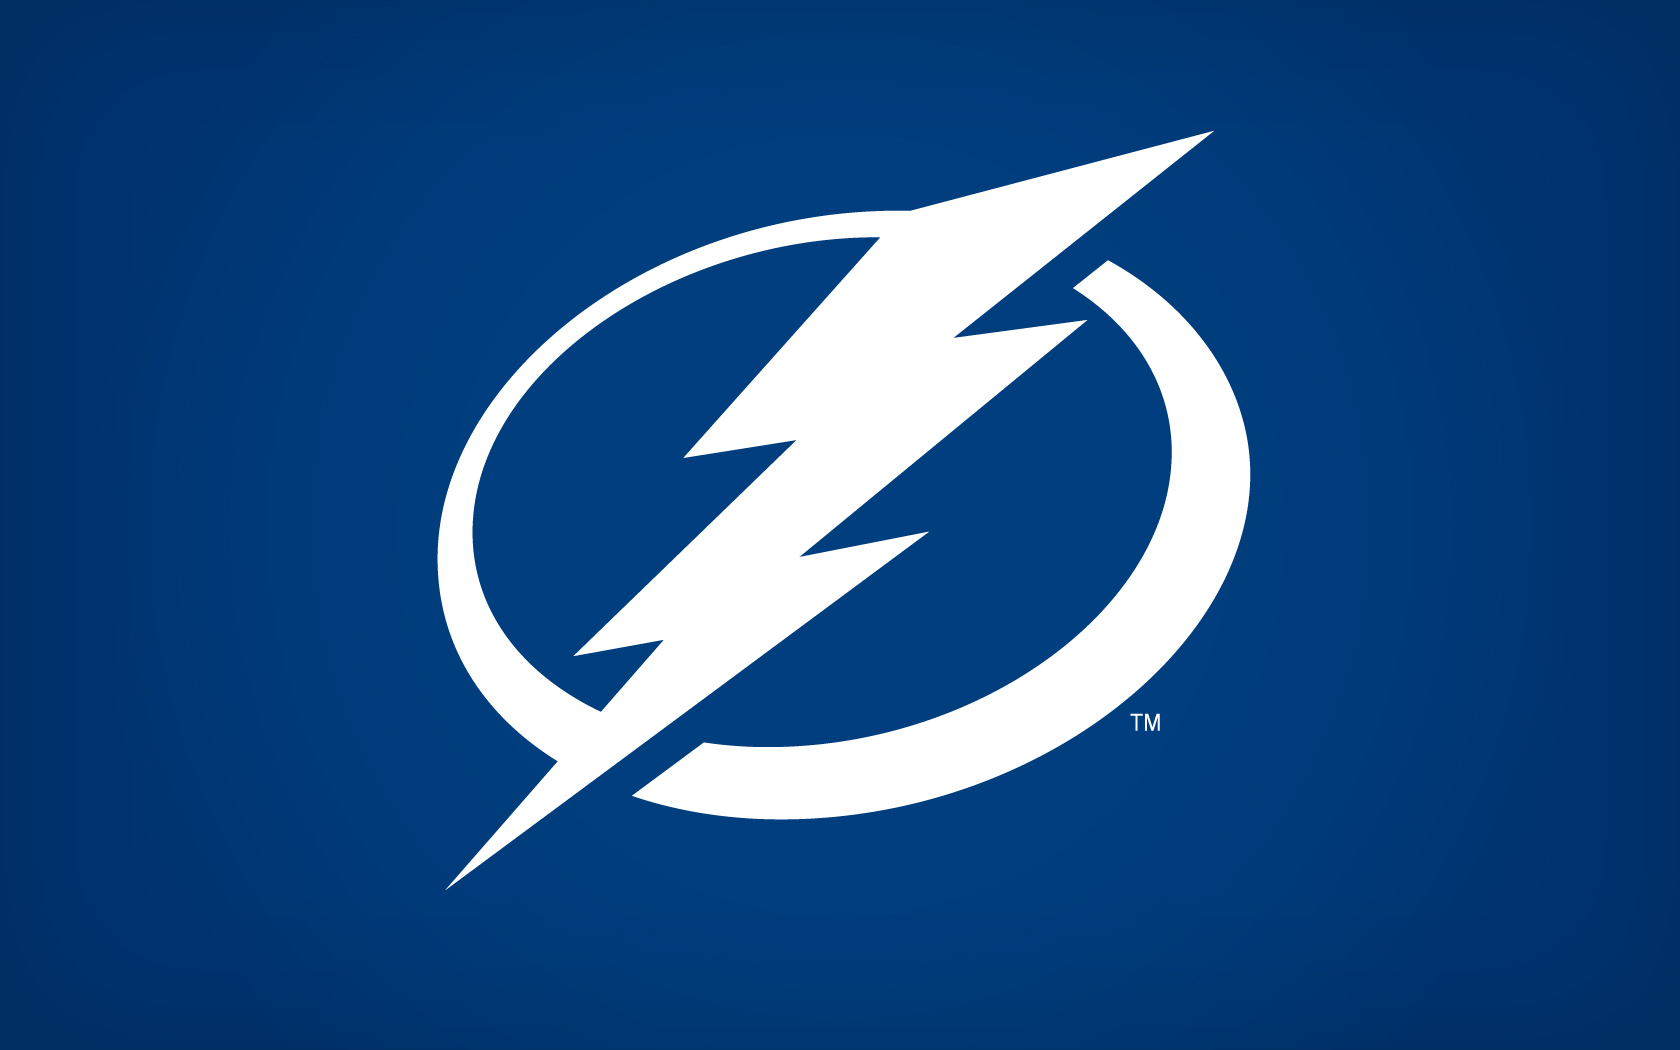 Tampa Bay Lightning images TBL Logo Wallpaper HD wallpaper 1680x1050